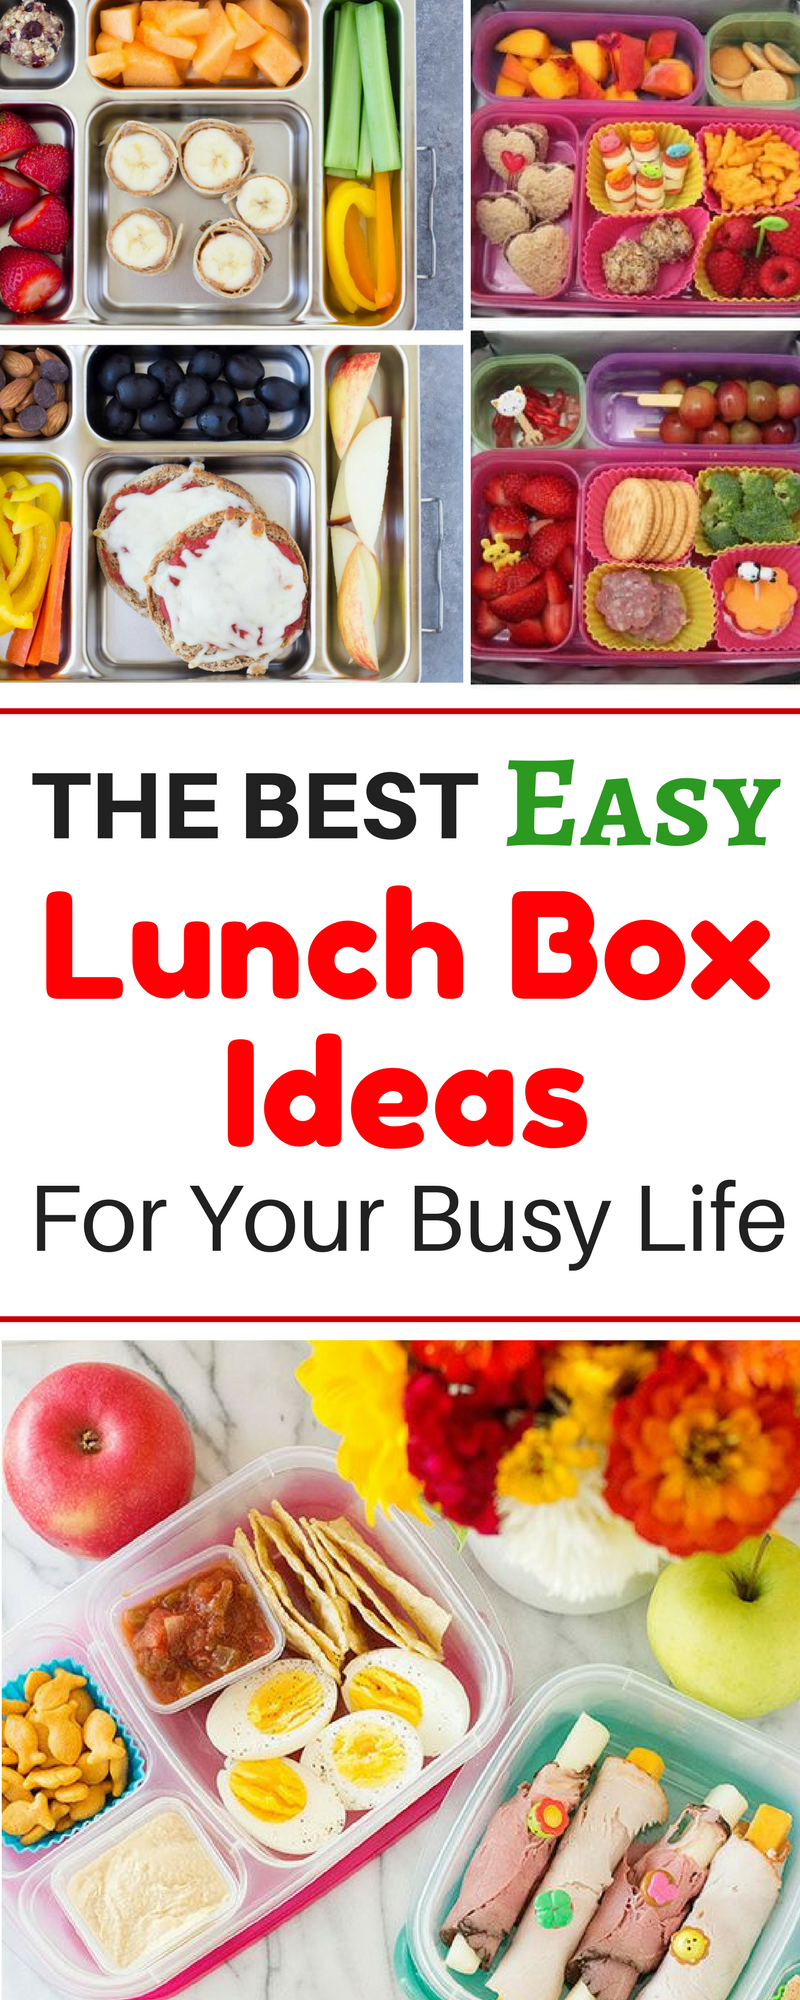 If your child is a picky eater, we have you covered! Here are 5 Back to School Lunch Ideas for Picky Eaters! Your kiddos will love these lunch ideas. If your child is a picky eater, we have you covered! A weekly meal plan for one week's worth of kids school lunch ideas. Easy to pack cold lunches for kids. This menu has been mom and KID.